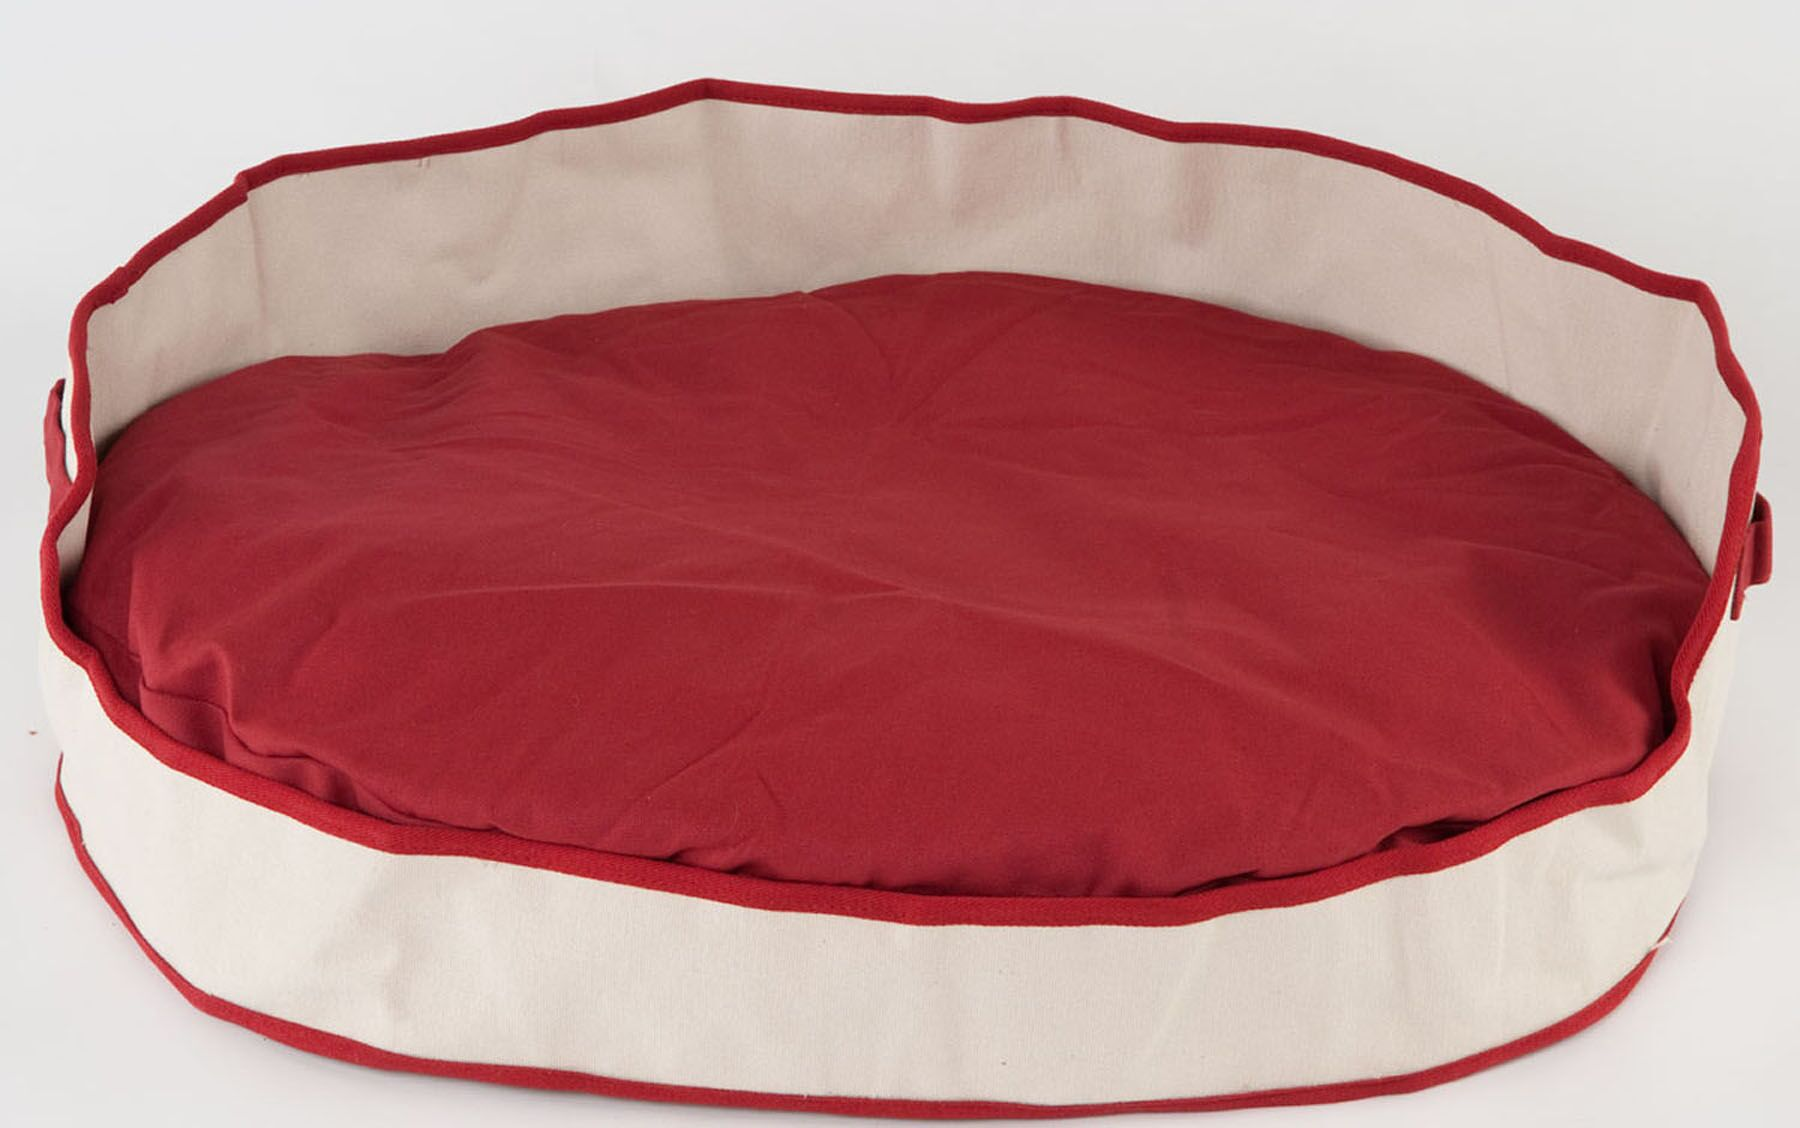 Armes Oval Bolster Dog Bed Color: Red, Size: Medium (35